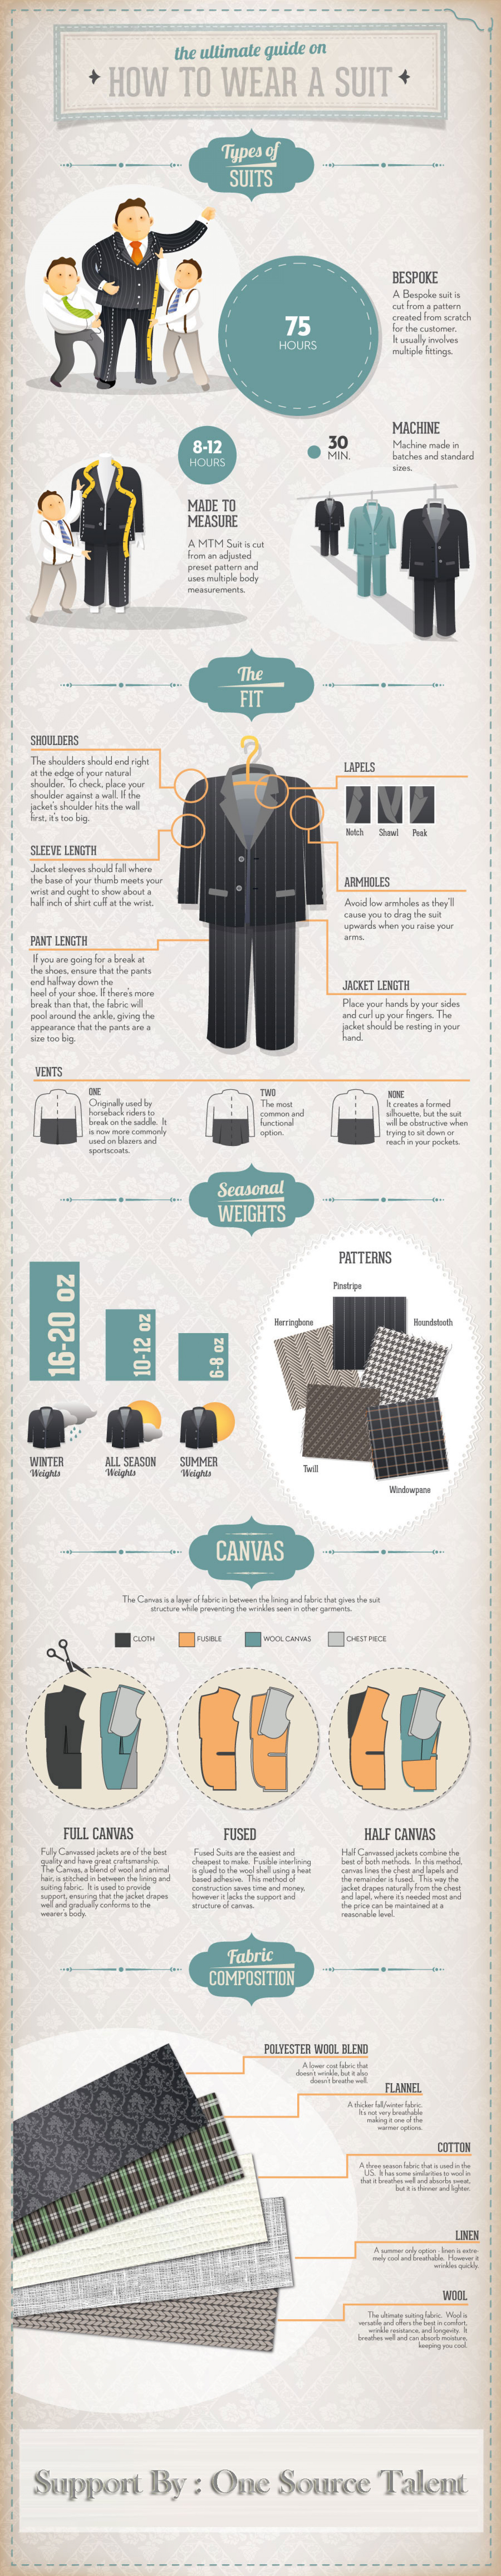 one source talent says how to wear a suit Infographic